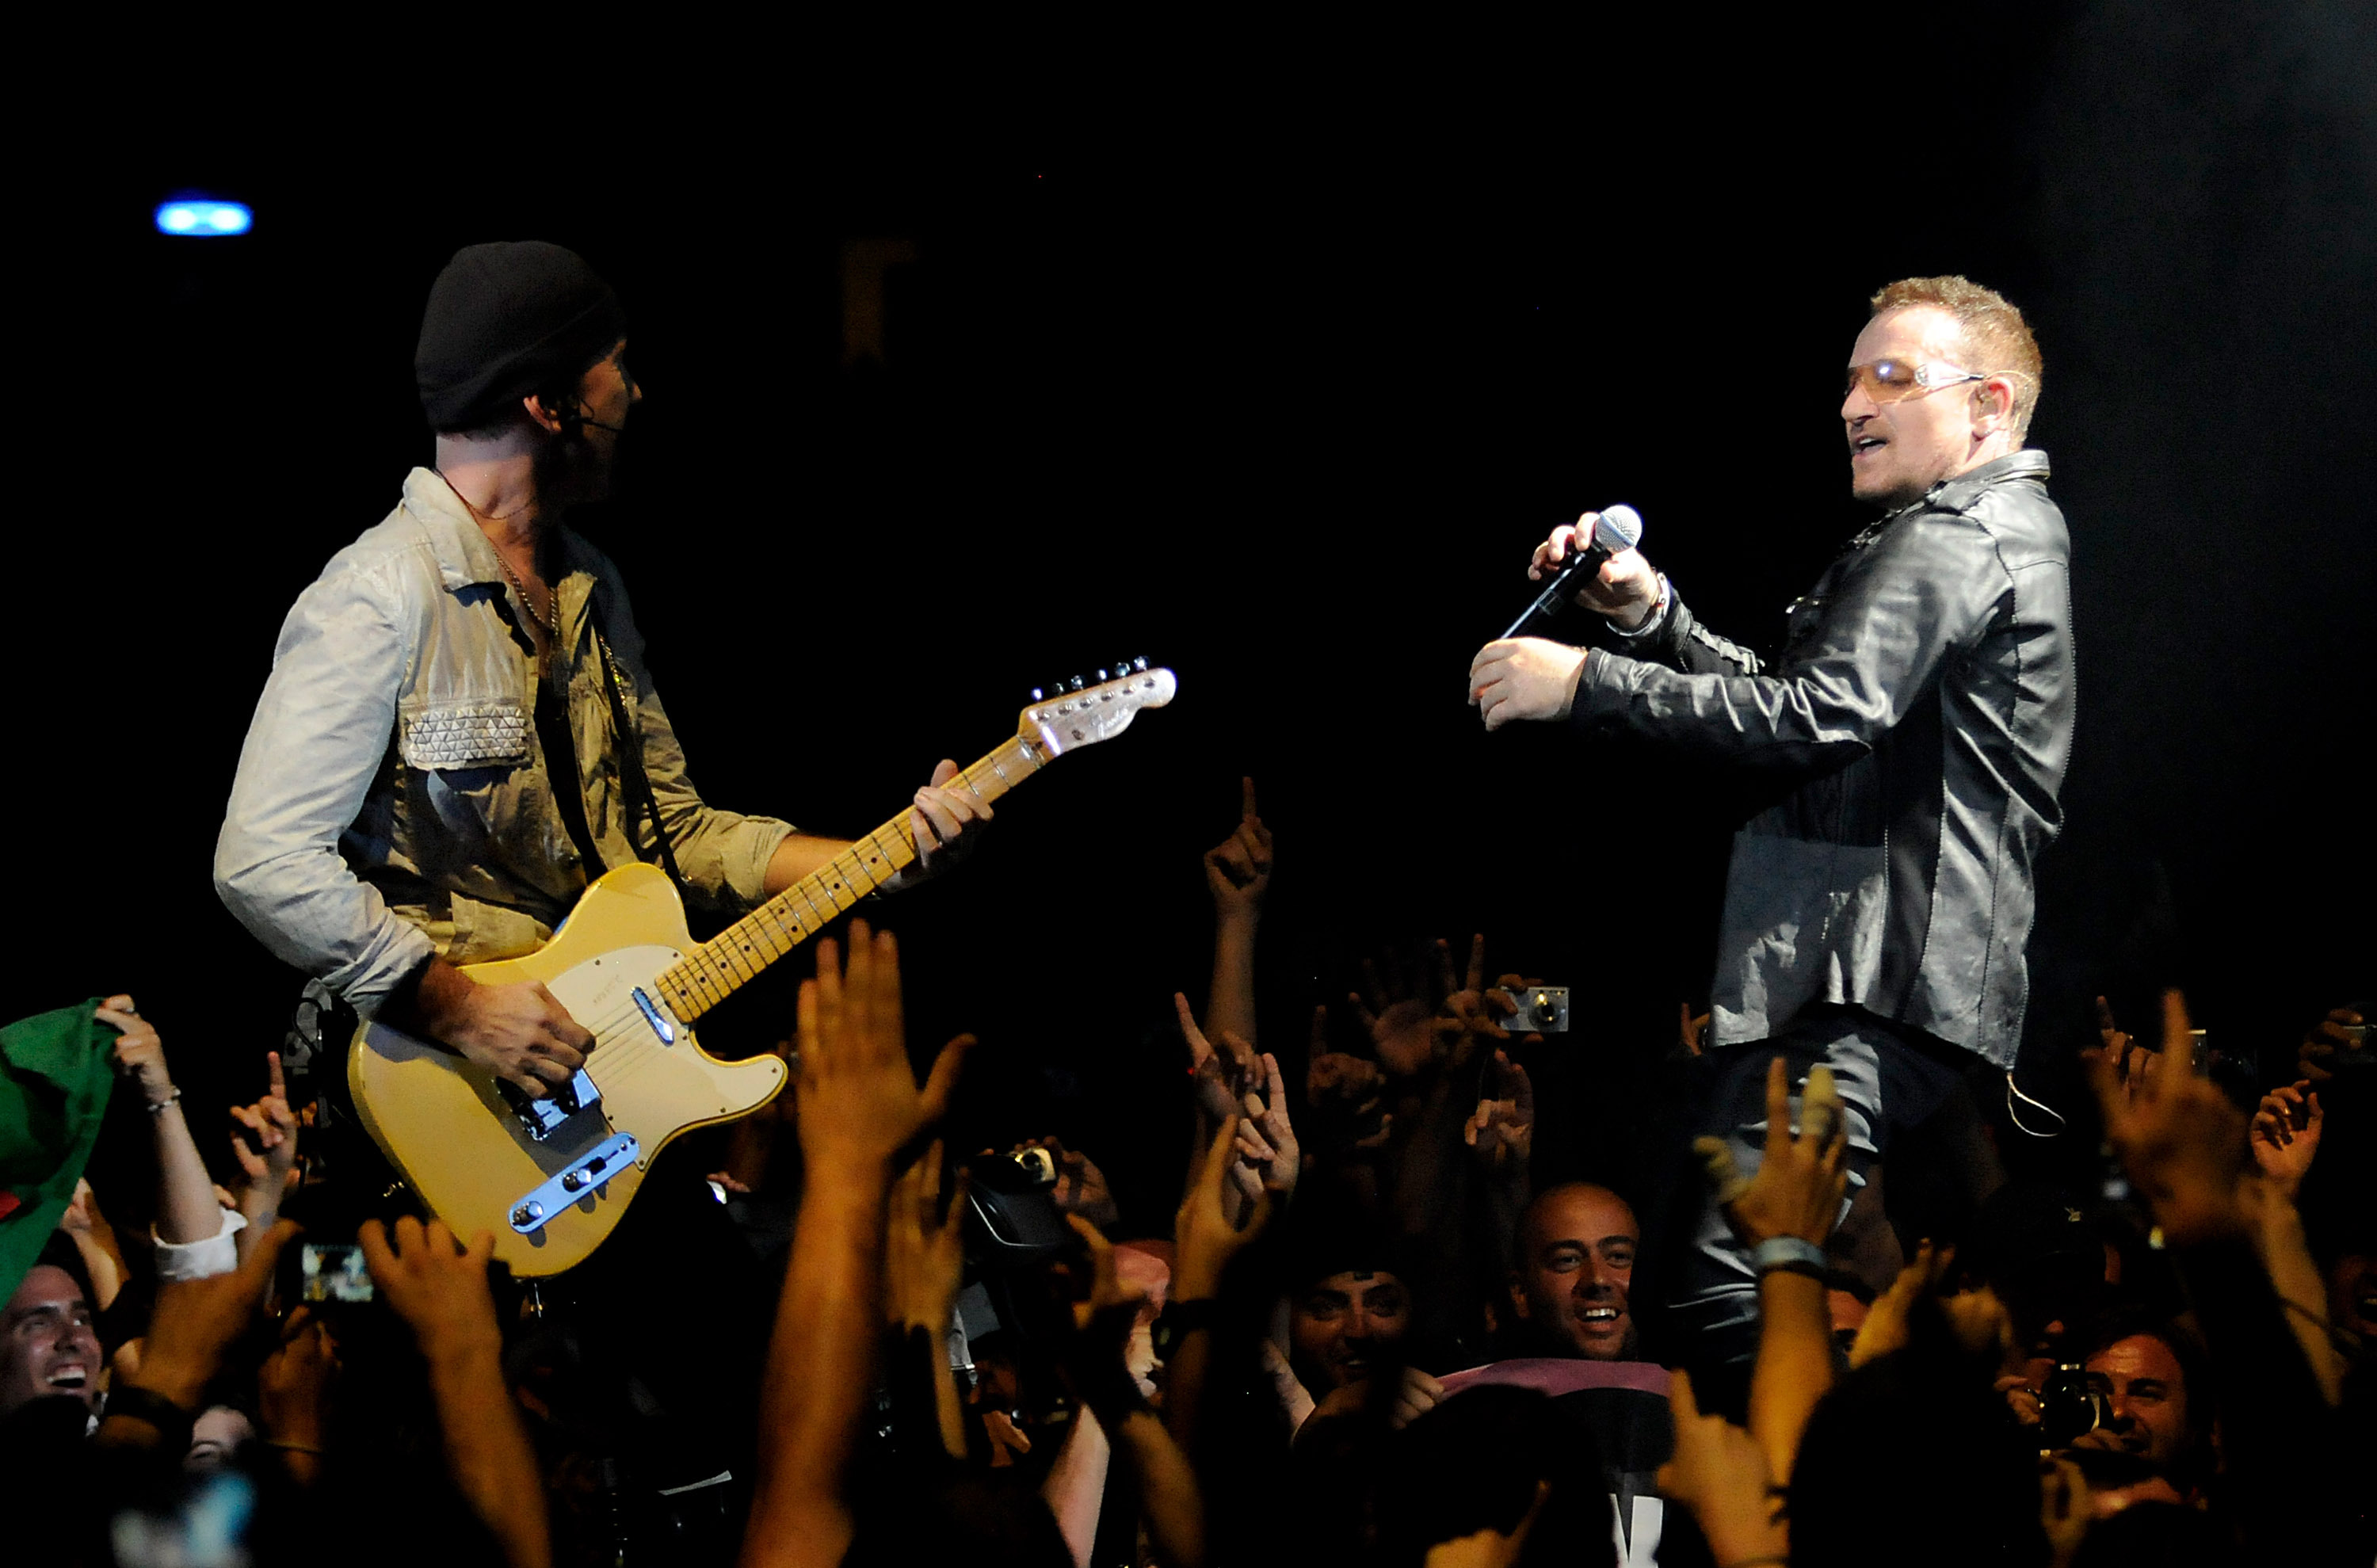 2c5c377c The Edge and Bono Join the Board of Fender Musical Instruments Corporation    Business Wire